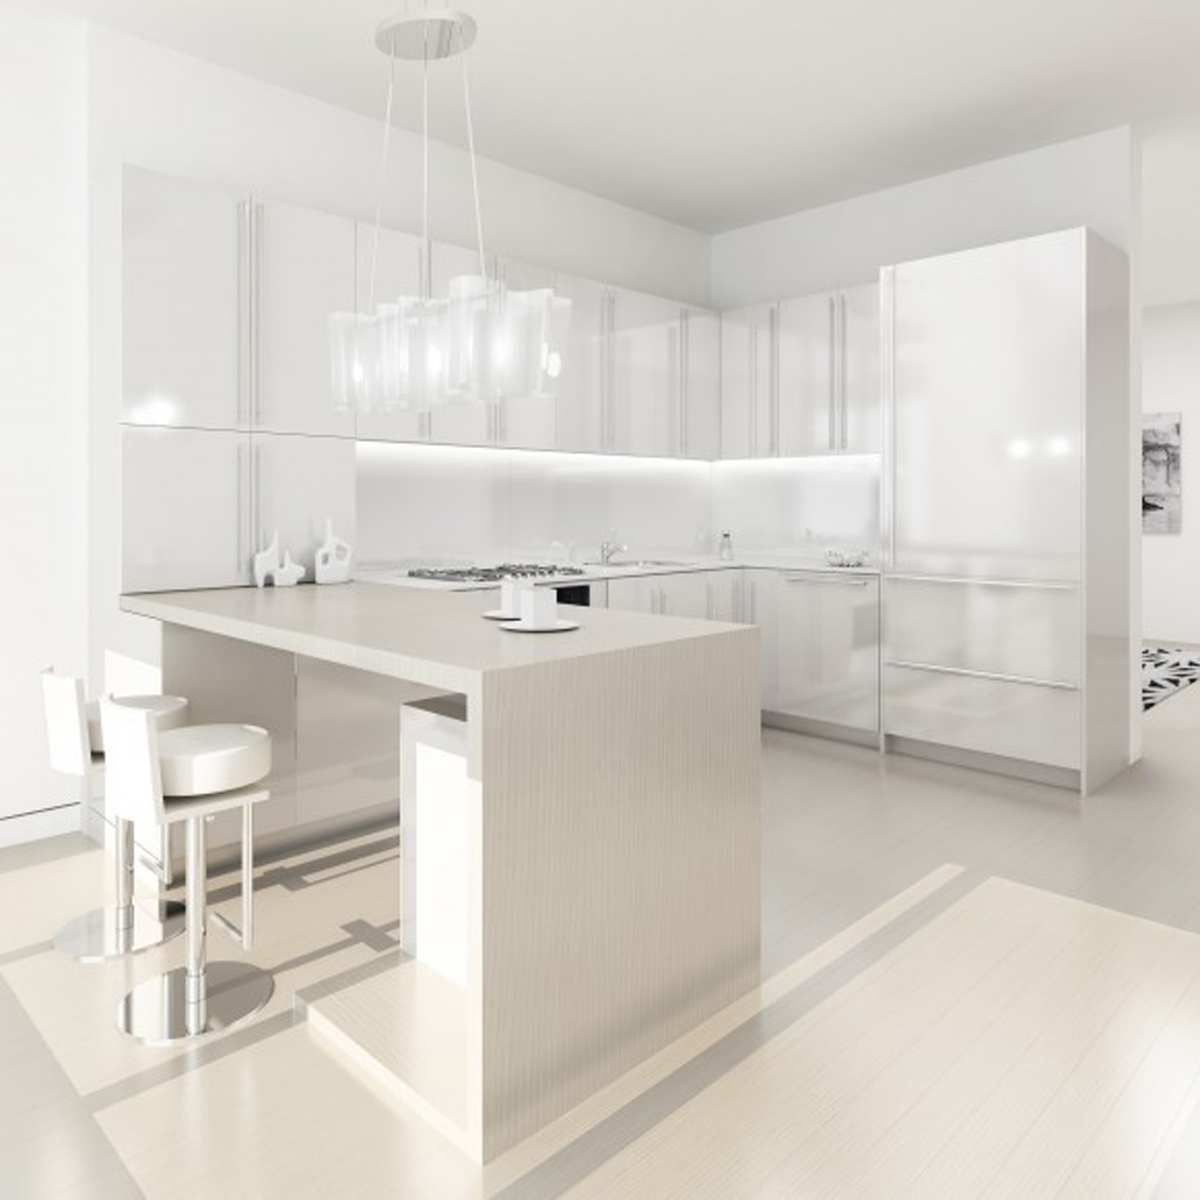 Modern Beadboard Cabinets in Glossy White Design